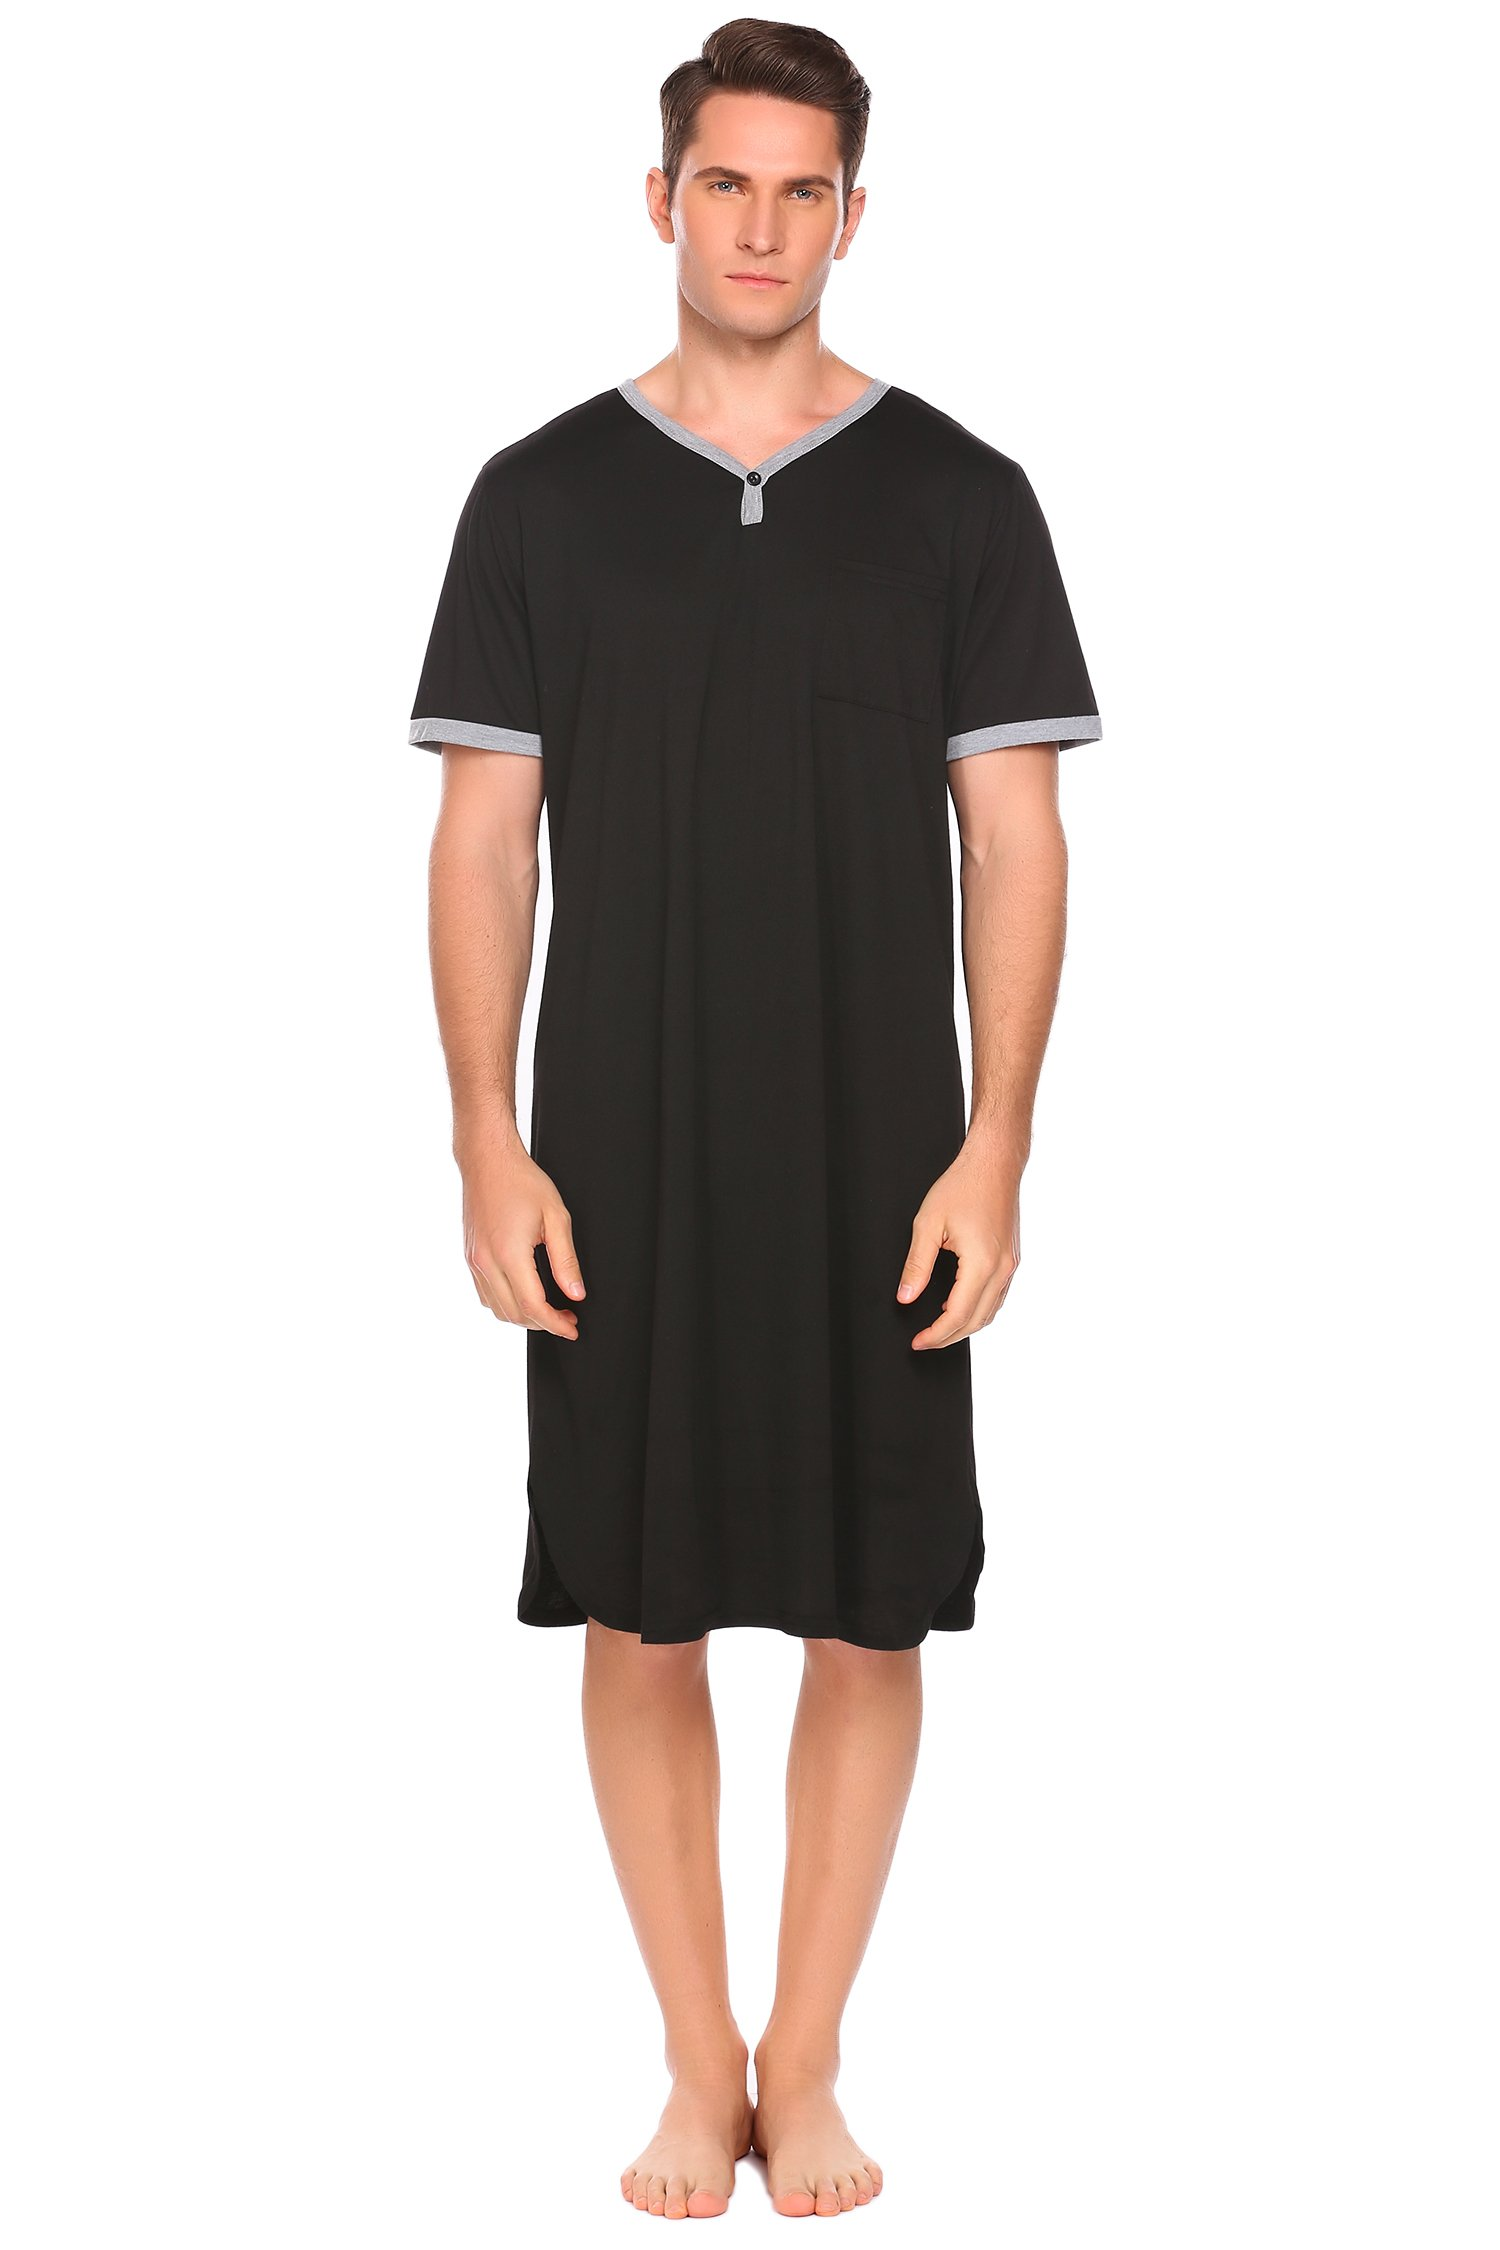 Ekouaer Mens Nightshirt, Viscose Long Sleep Shirt (Black, Medium